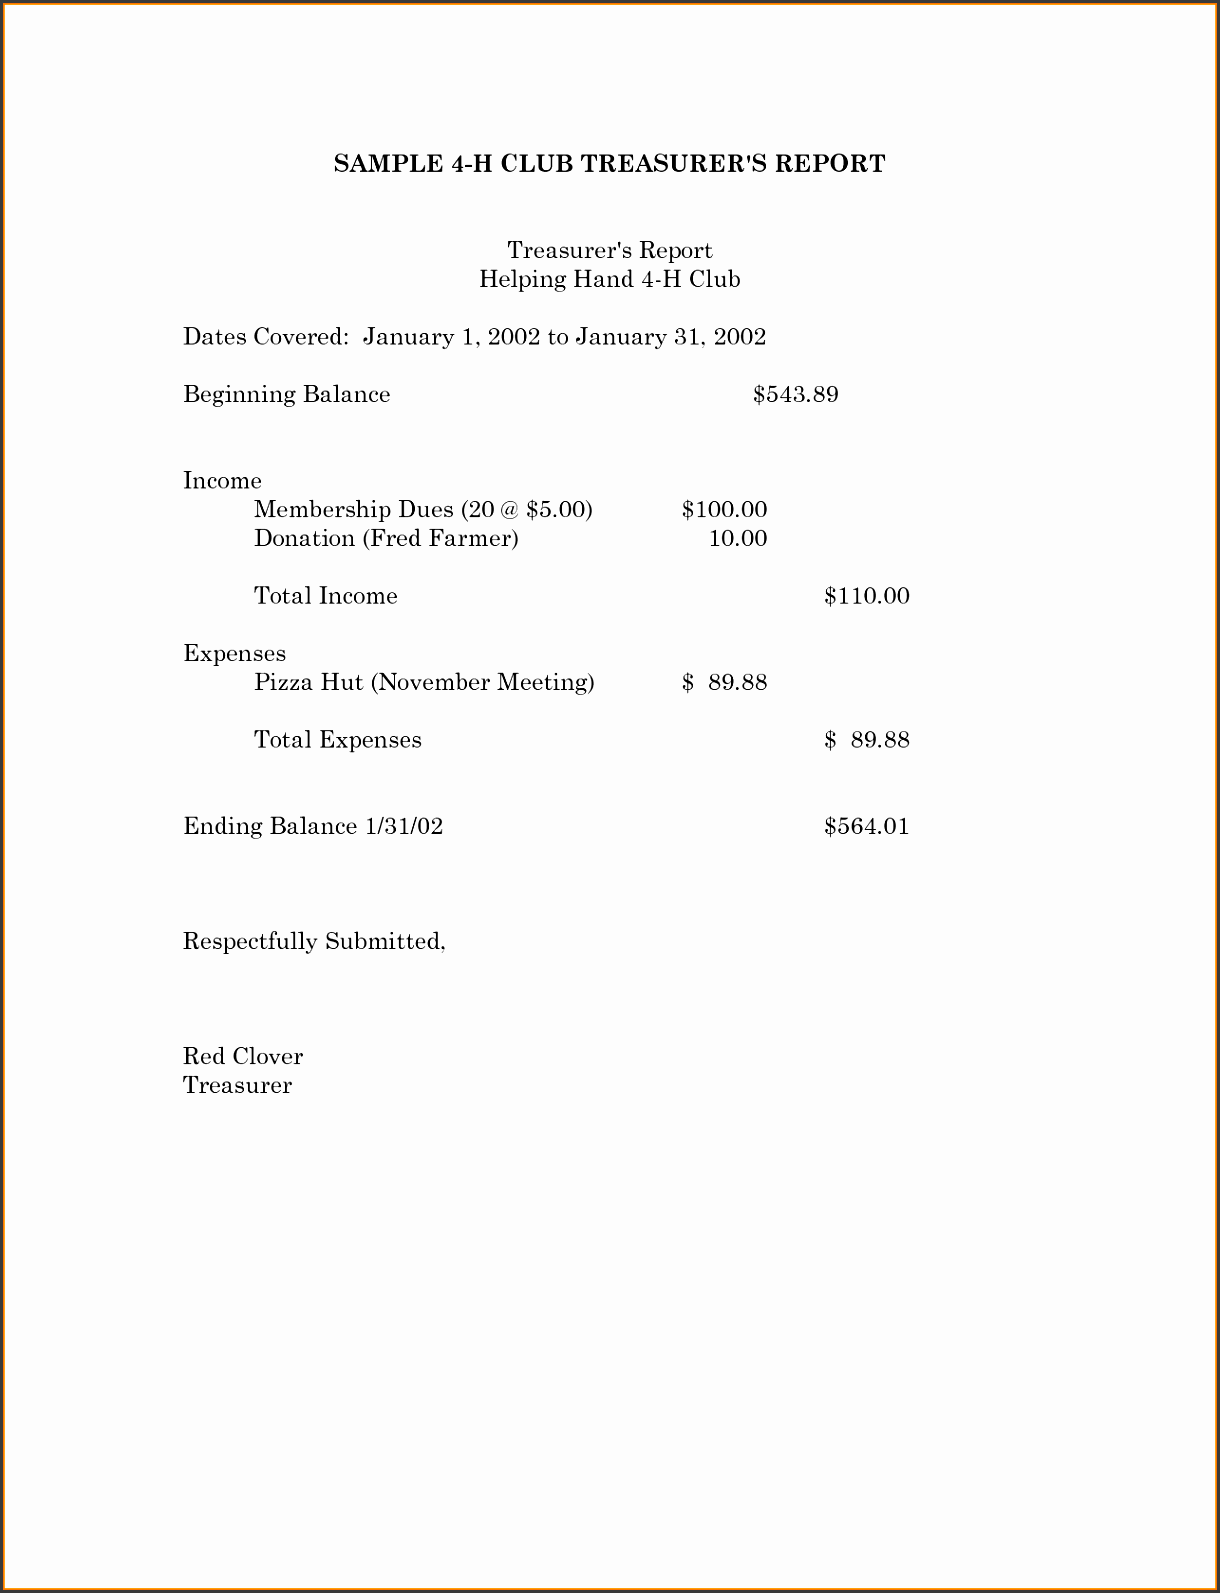 expense report template smartsheet an expense report template includes personal or business expense for travel reimbursement and bud planning